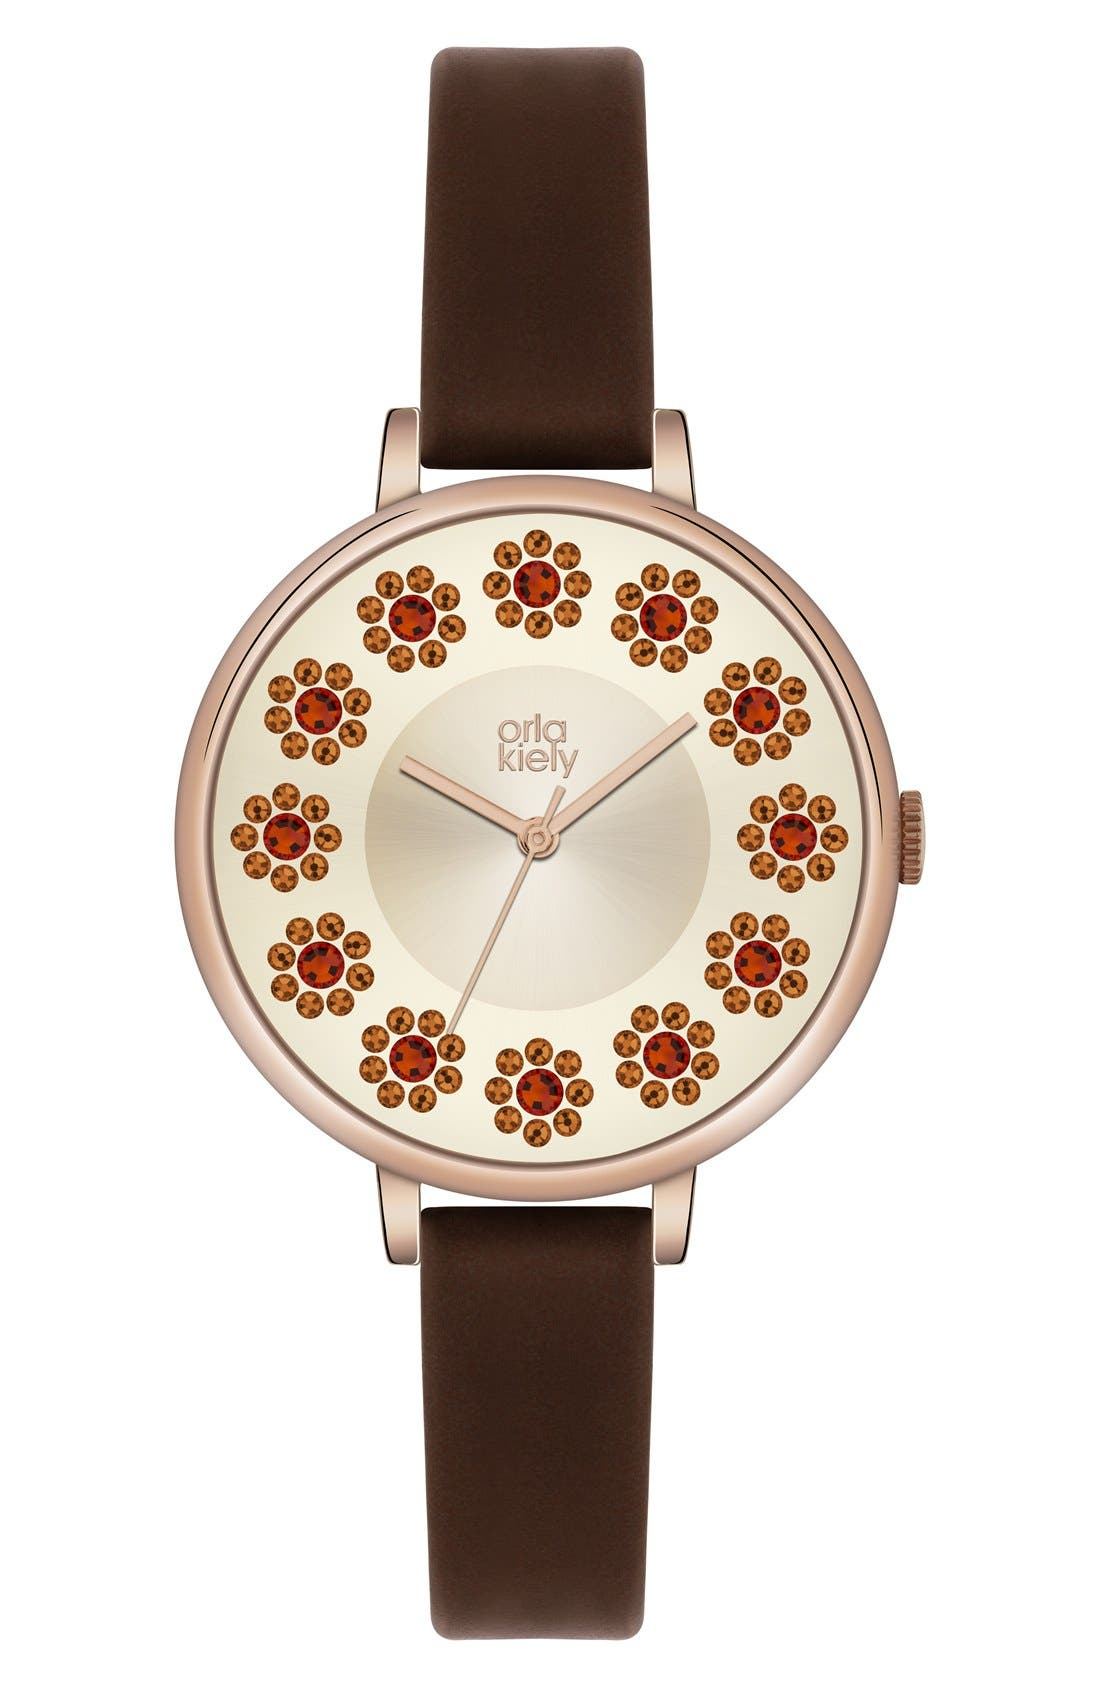 Main Image - Orla Kiely 'Ivy' Crystal Dial Leather Strap Watch, 40mm